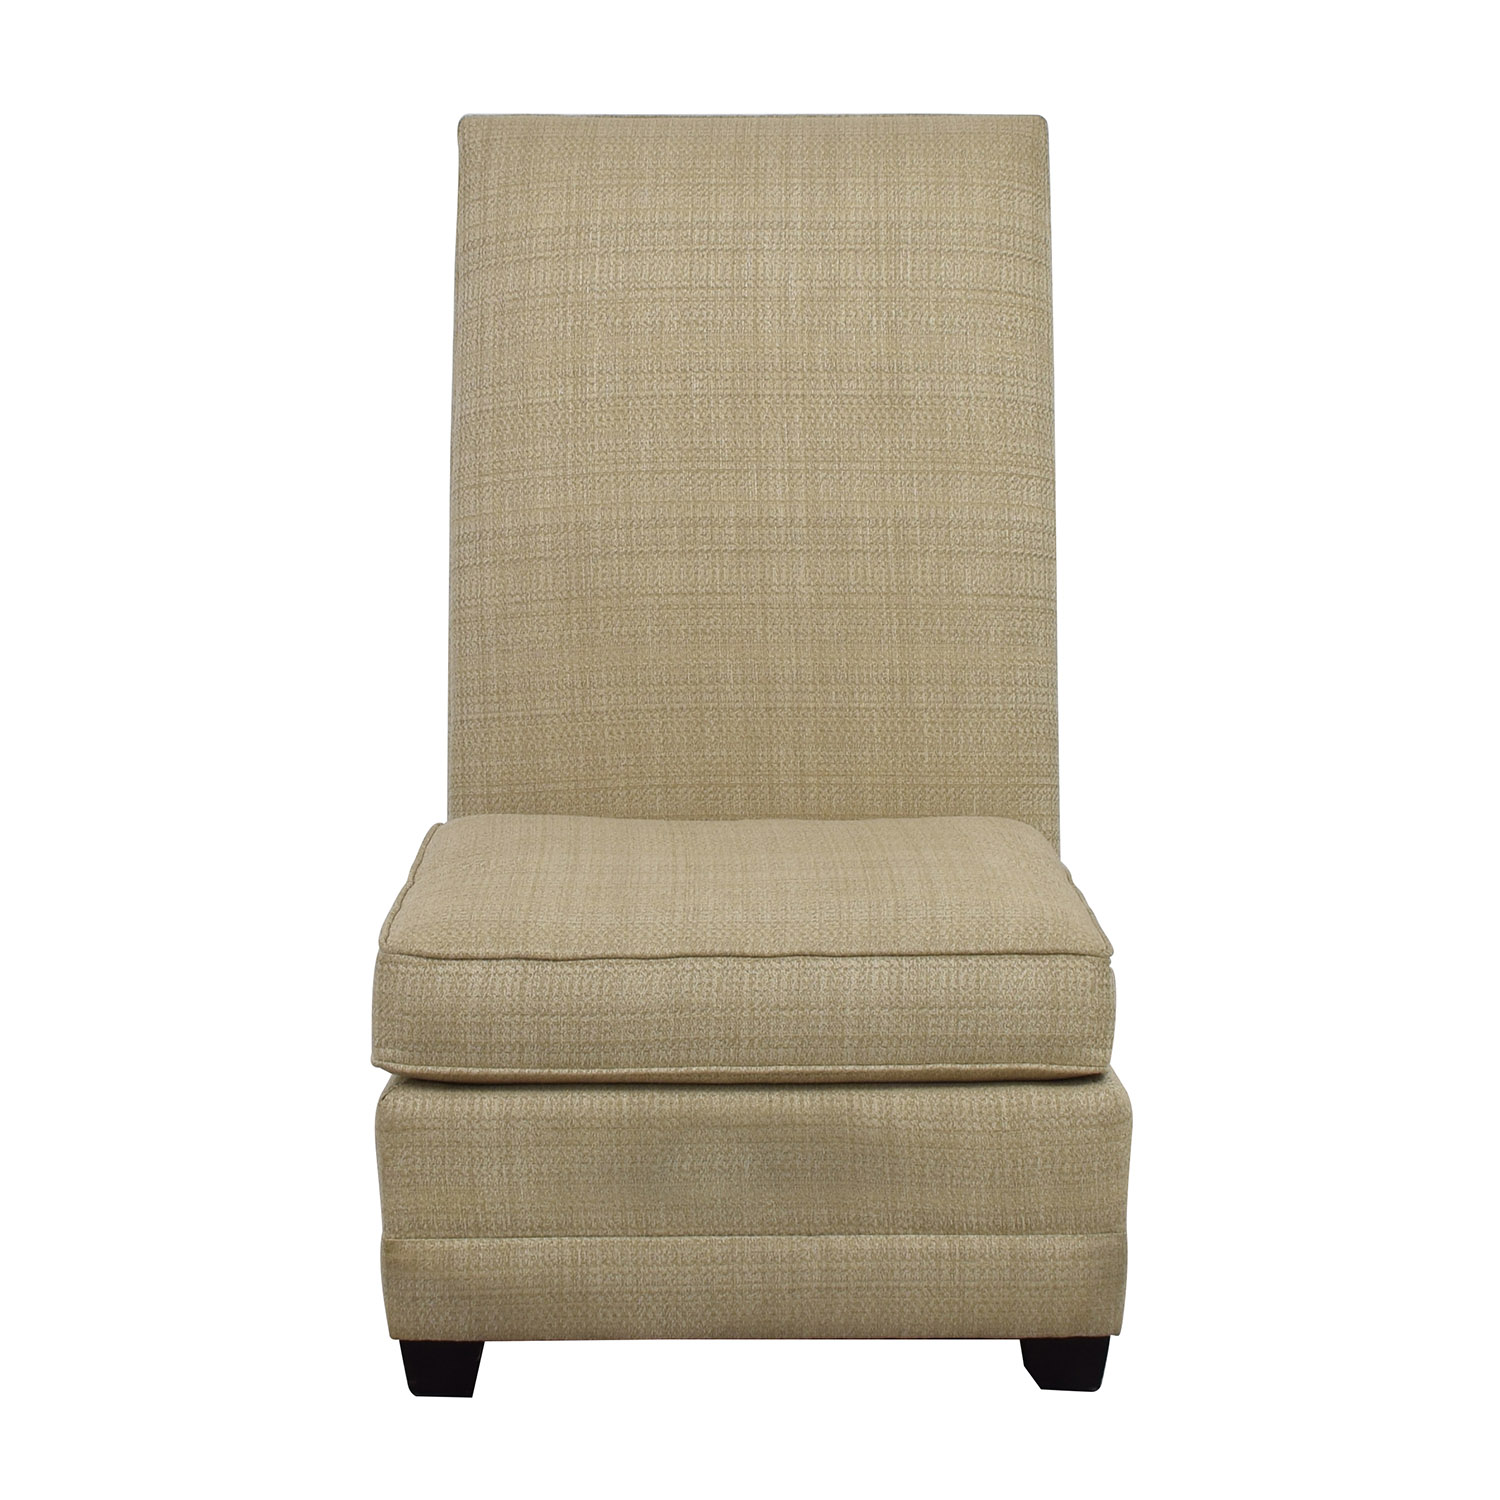 Bernhardt Beaumont Cream Accent Chair / Chairs